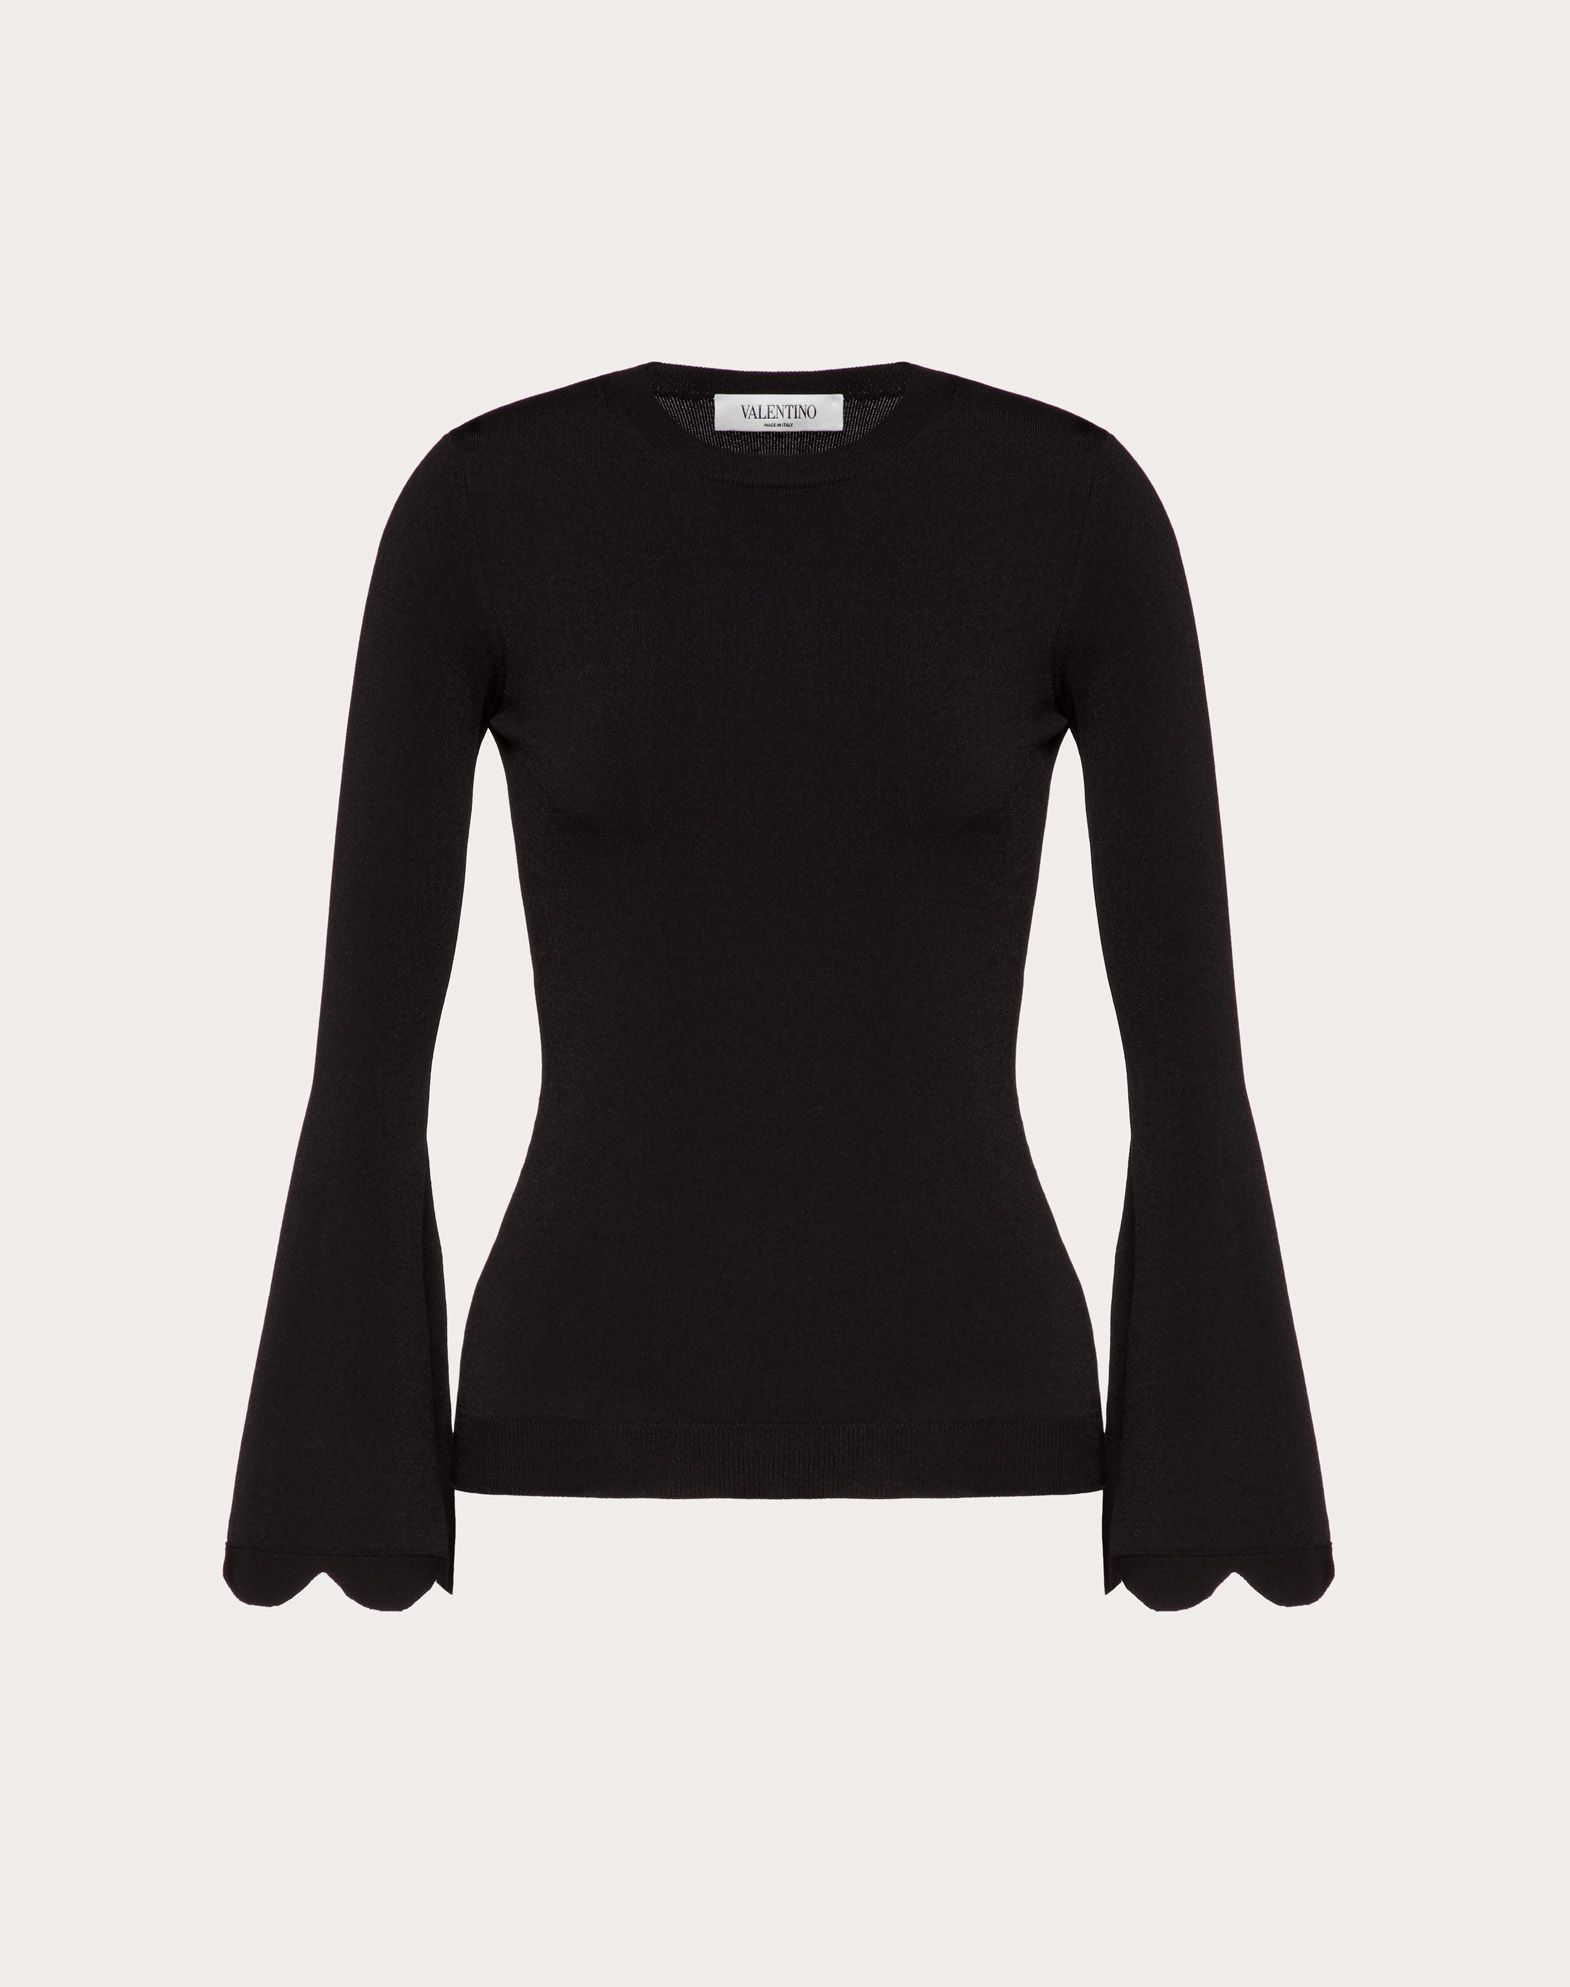 Scallop Viscose Sweater